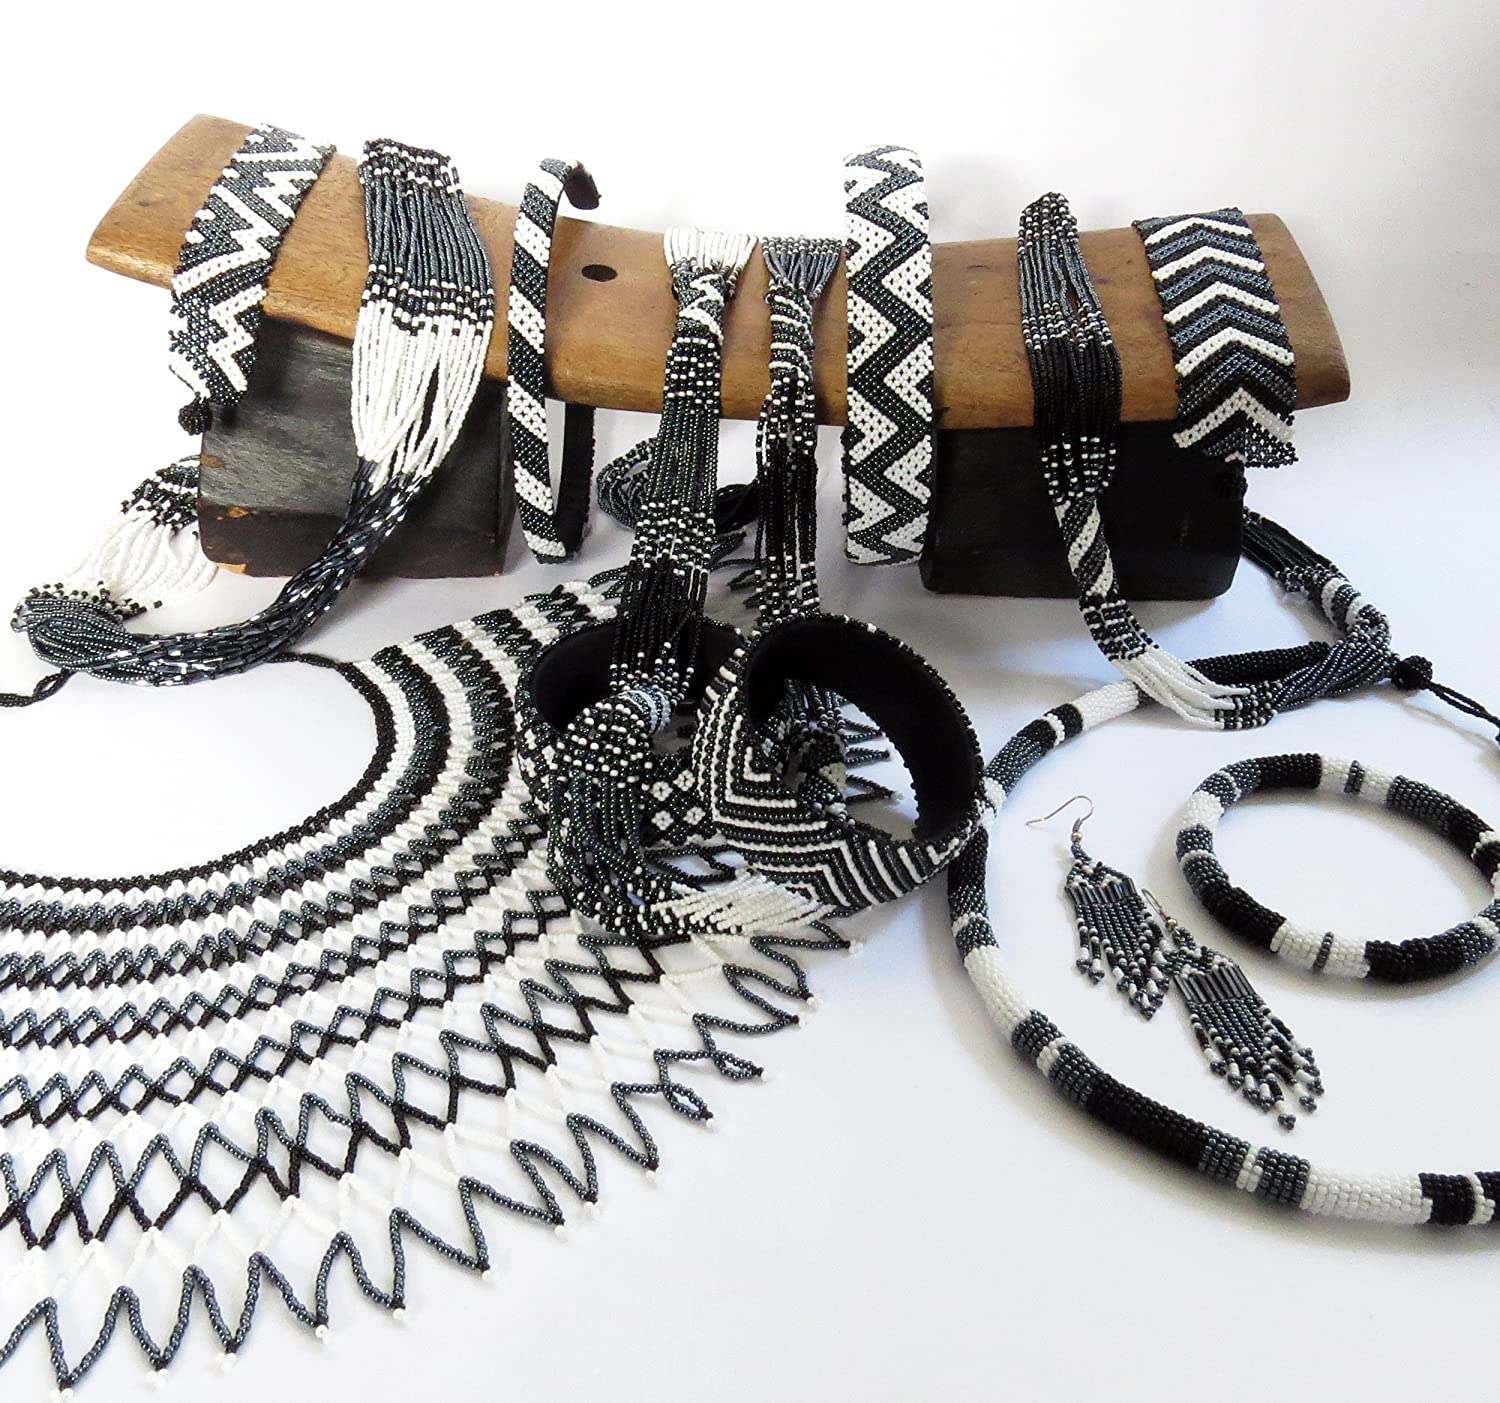 African Zulu beaded short necklace – Black/white/gunmetal - Gift for her